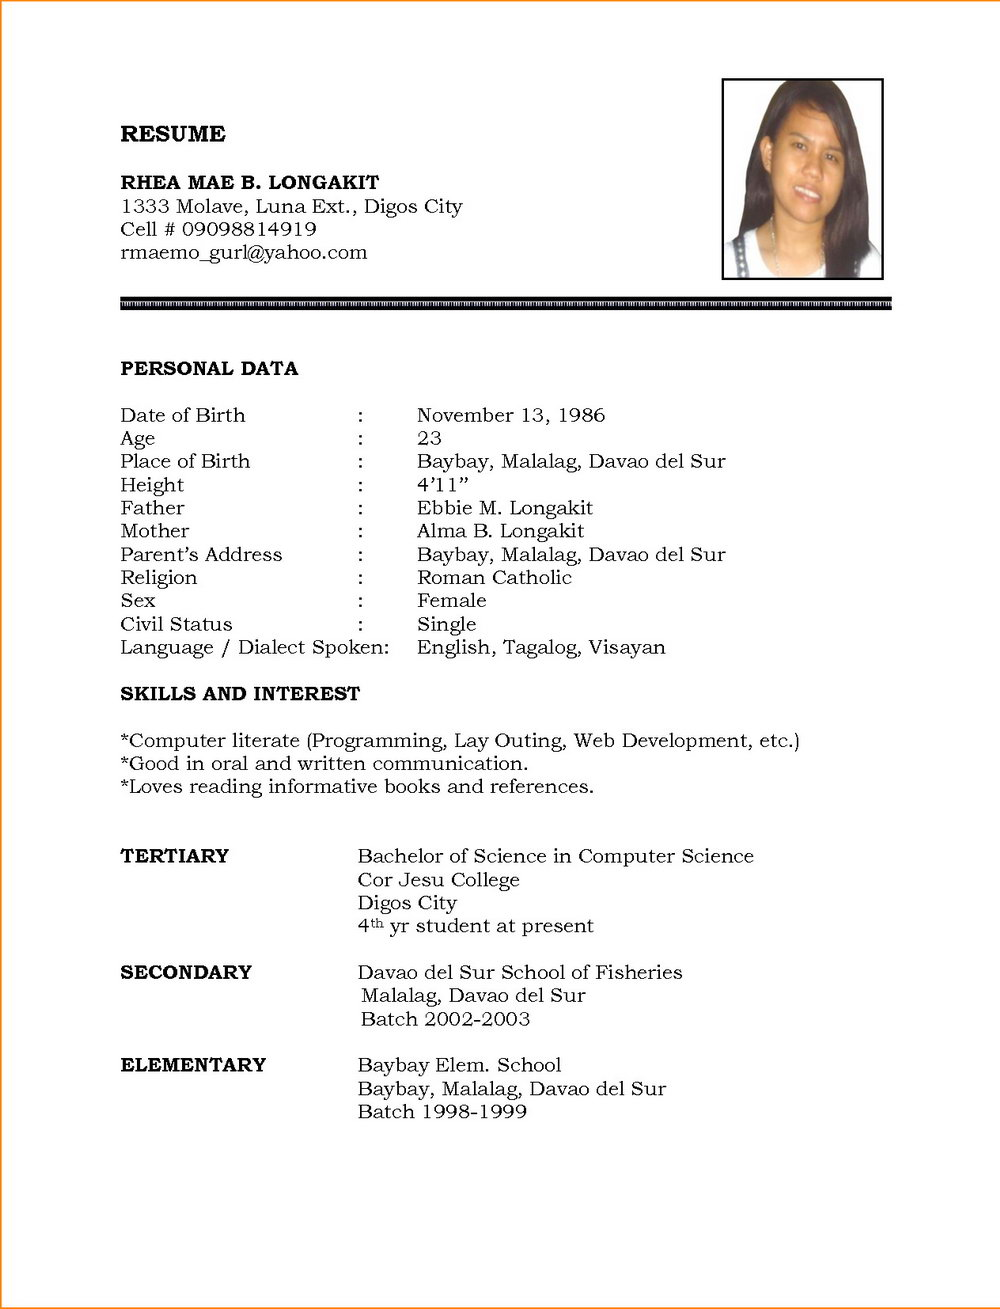 Simple Resume Format Free Download In Ms Word